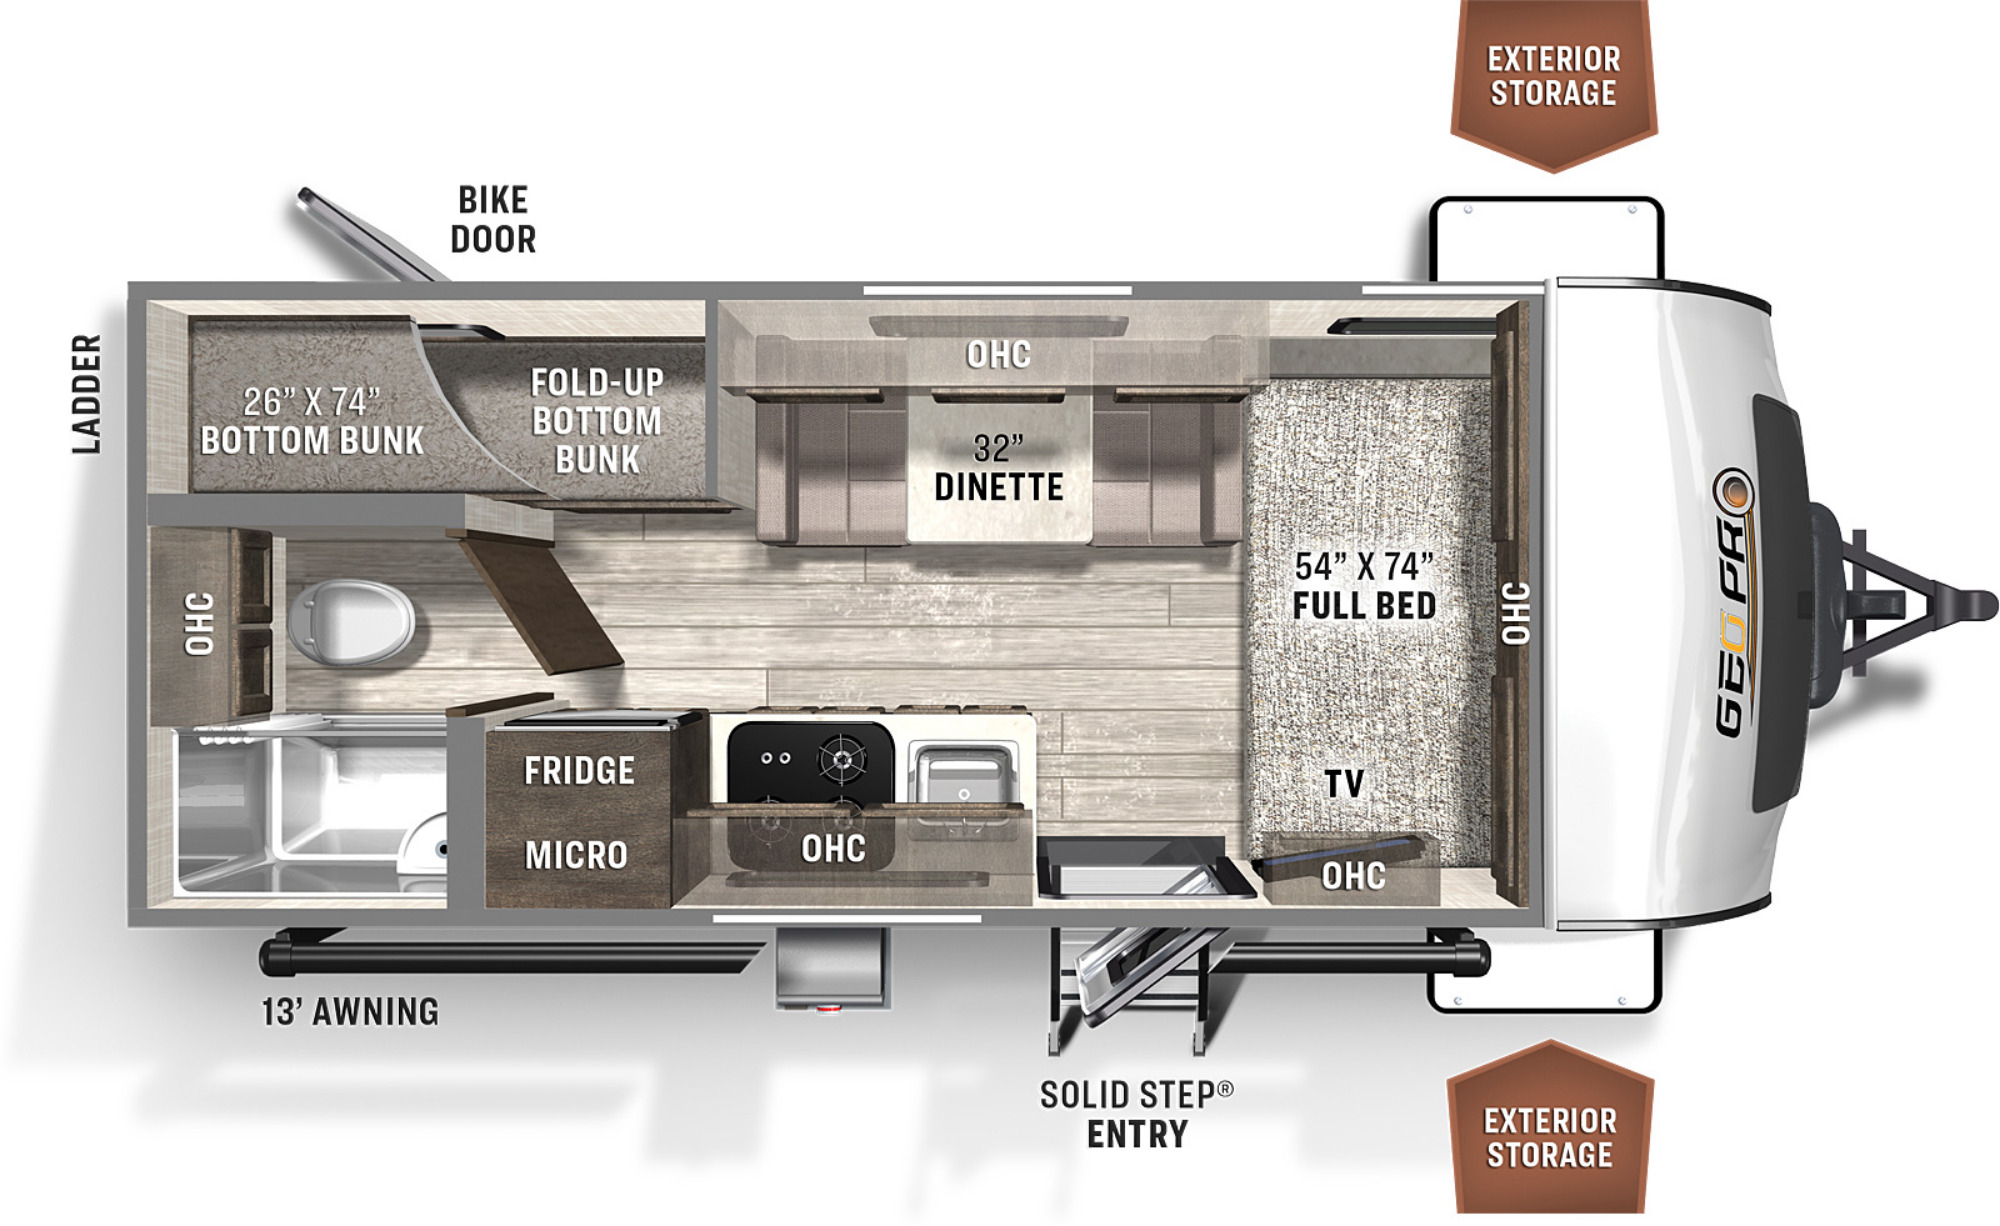 View Floor Plan for 2022 FOREST RIVER ROCKWOOD GEO-PRO 19BH